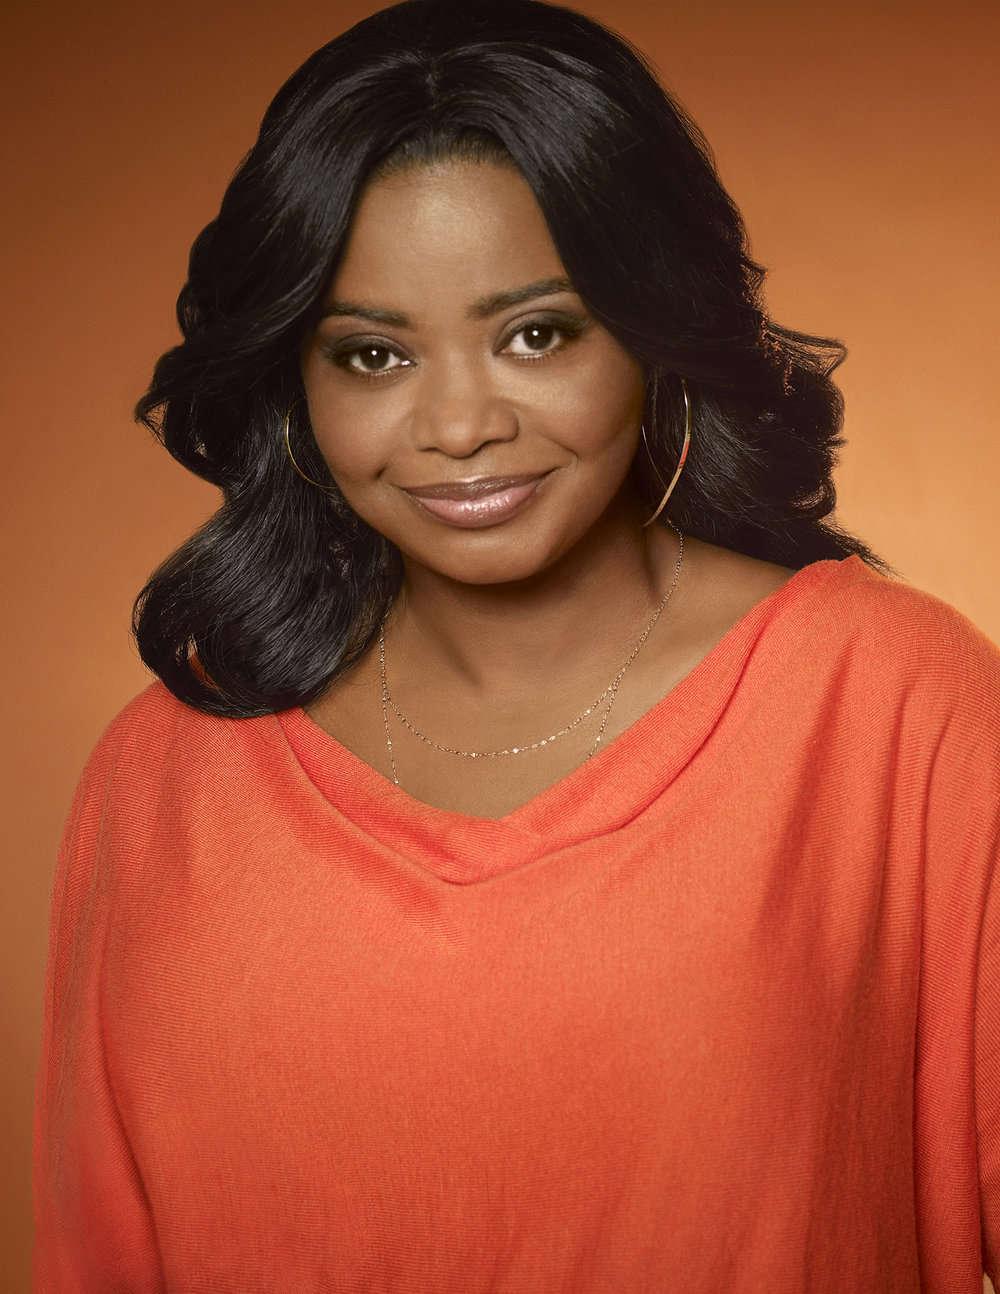 One of Hollywood's most sought-after talents, Octavia Spencer has become a familiar fixture on both television and the silver screen. Her critically acclaimed performance as Minny in 2011's The Help won her the Best Supporting Actress Academy Award, BAFTA Award, and Golden Globe Award, among numerous other accolades. Throughout the past year she has taken on many different characters, such as Johanna in Allegiant and Miss Harris in The Great Gilly Hopkins, as well as lending her voice to the character of Mrs. Otterton in Zootopia. Octavia can currently be seen in the critically acclaimed Hidden Figures, a drama that follows the true story of three African American women who were instrumental to NASA catching up in the Space Race. Octavia's performance as Dorothy Vaughan has earned her SAG, Golden Globe and NAACP Image Award nominations to date. Up next, Spencer will star in The Shack and Gifted